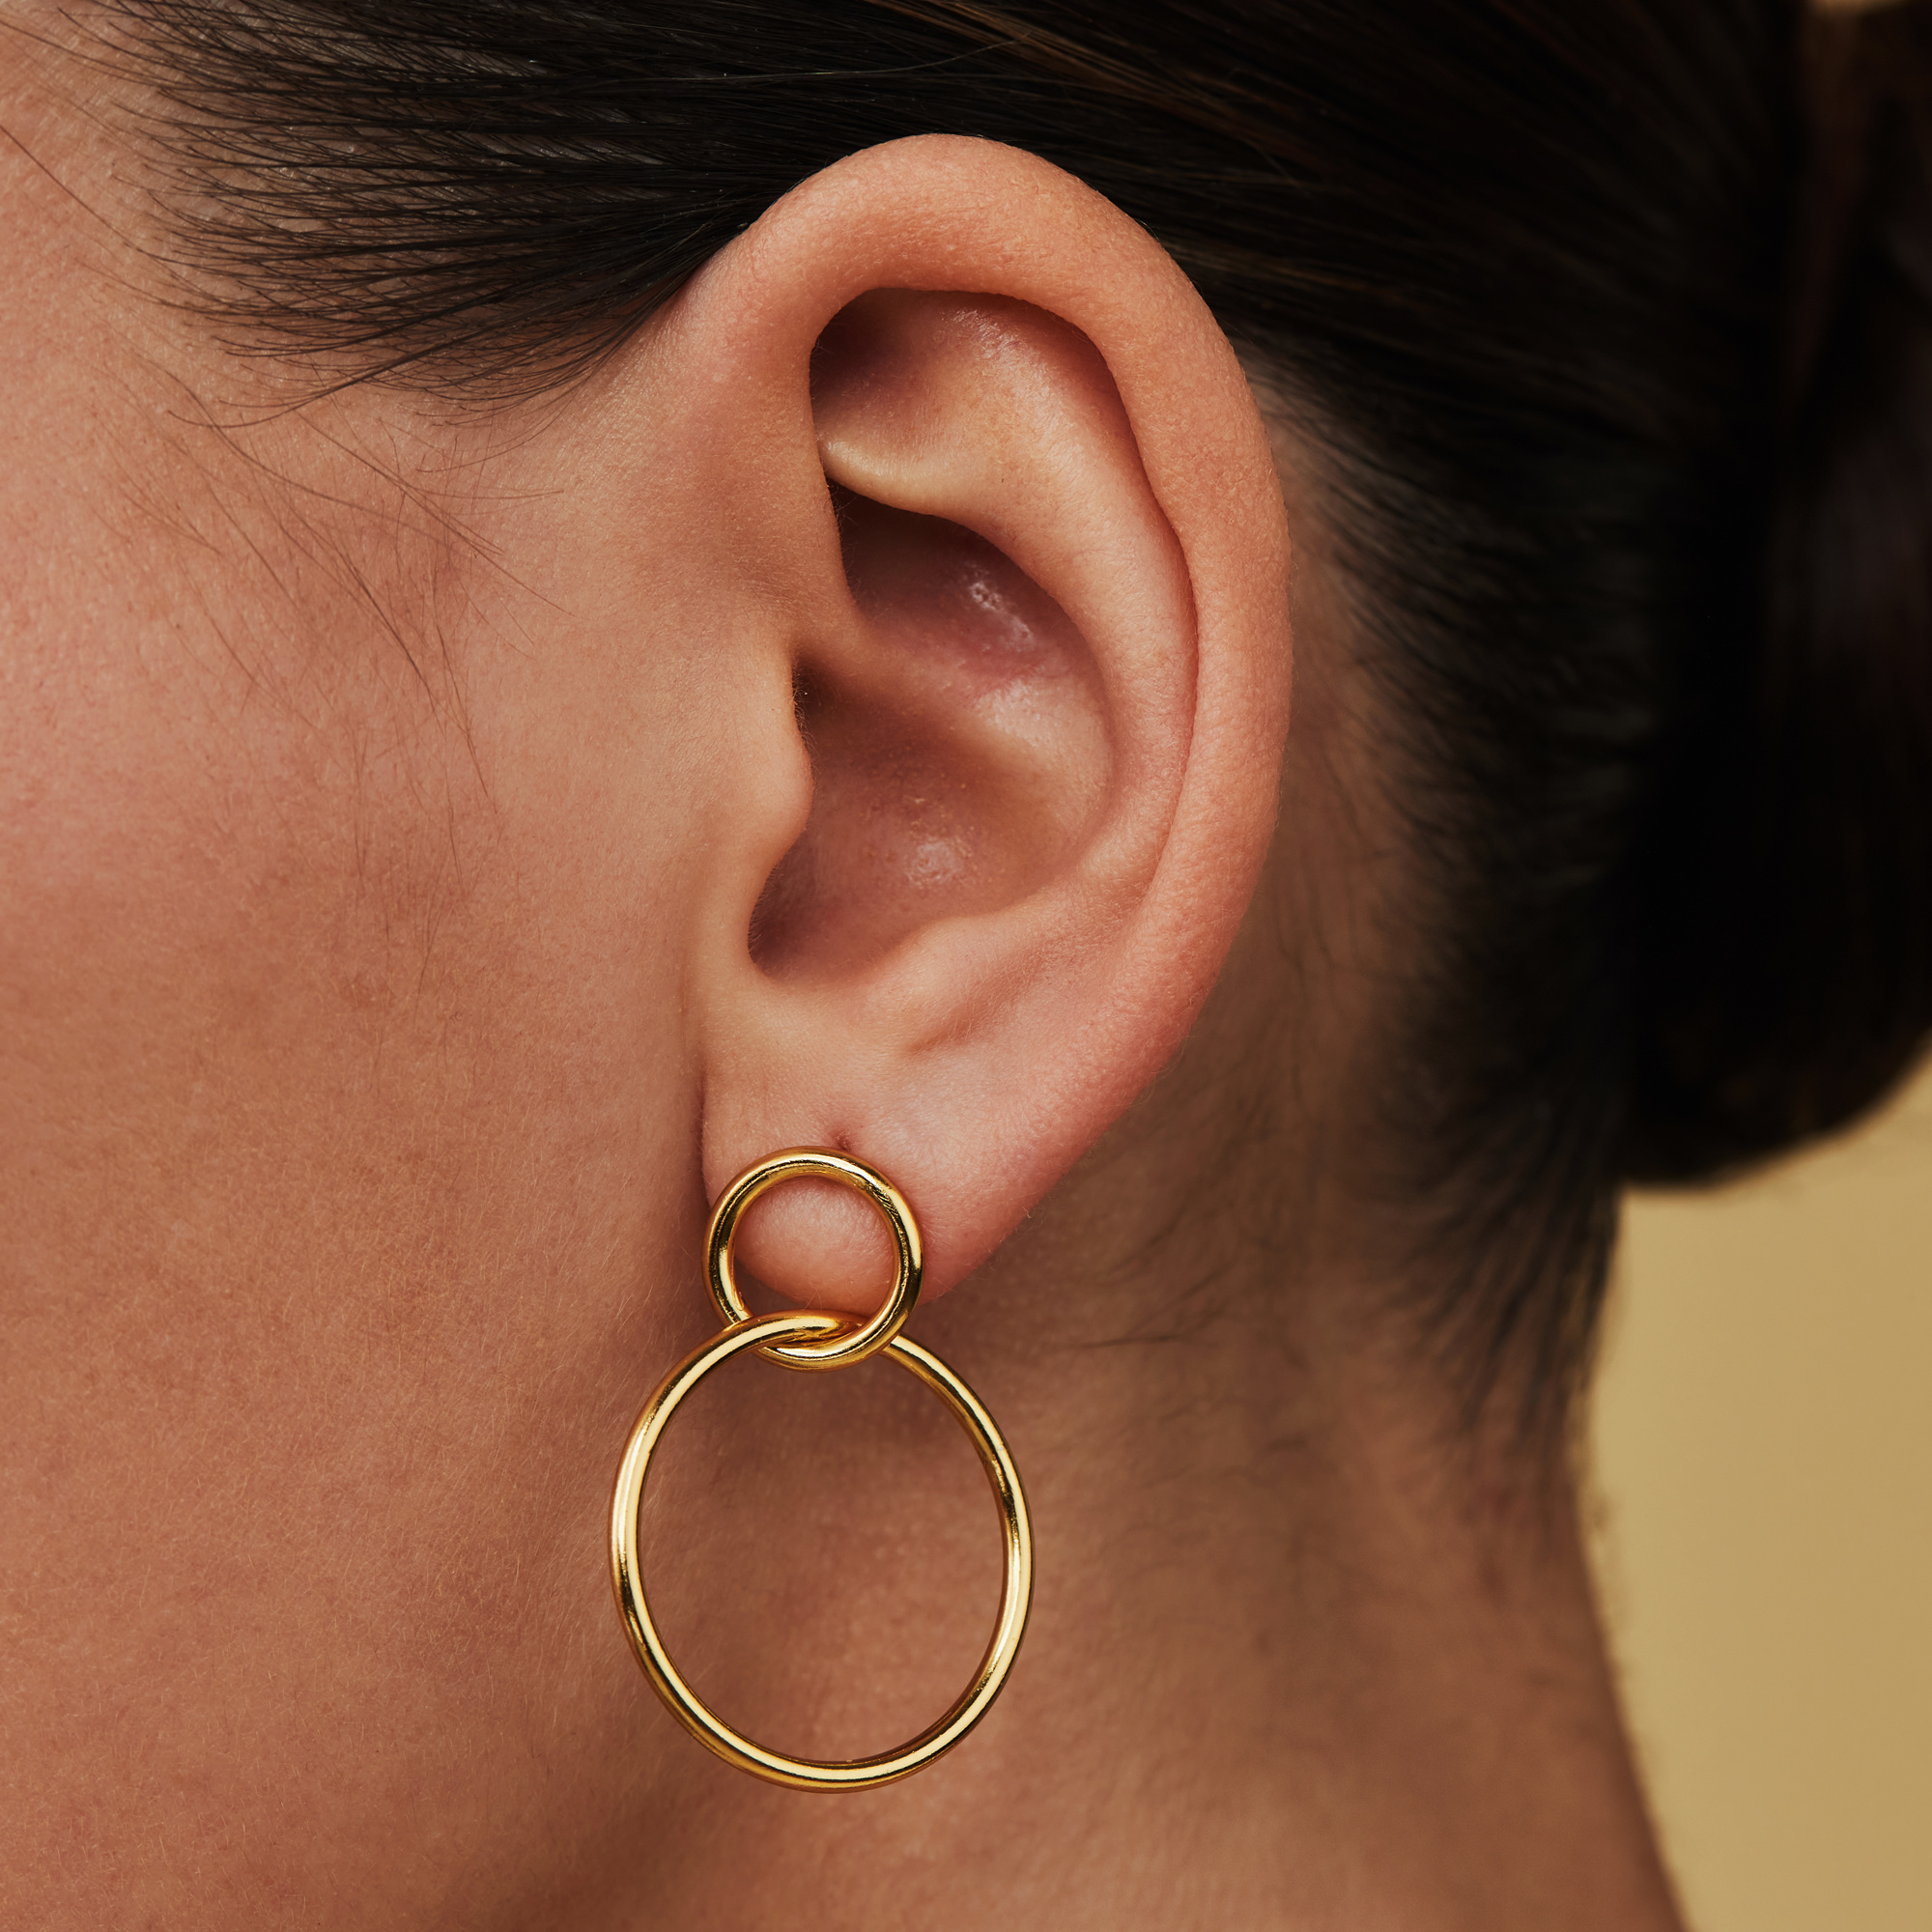 Selected Jewels Zoé 925 sterling silver gold colored drop earrings with circles